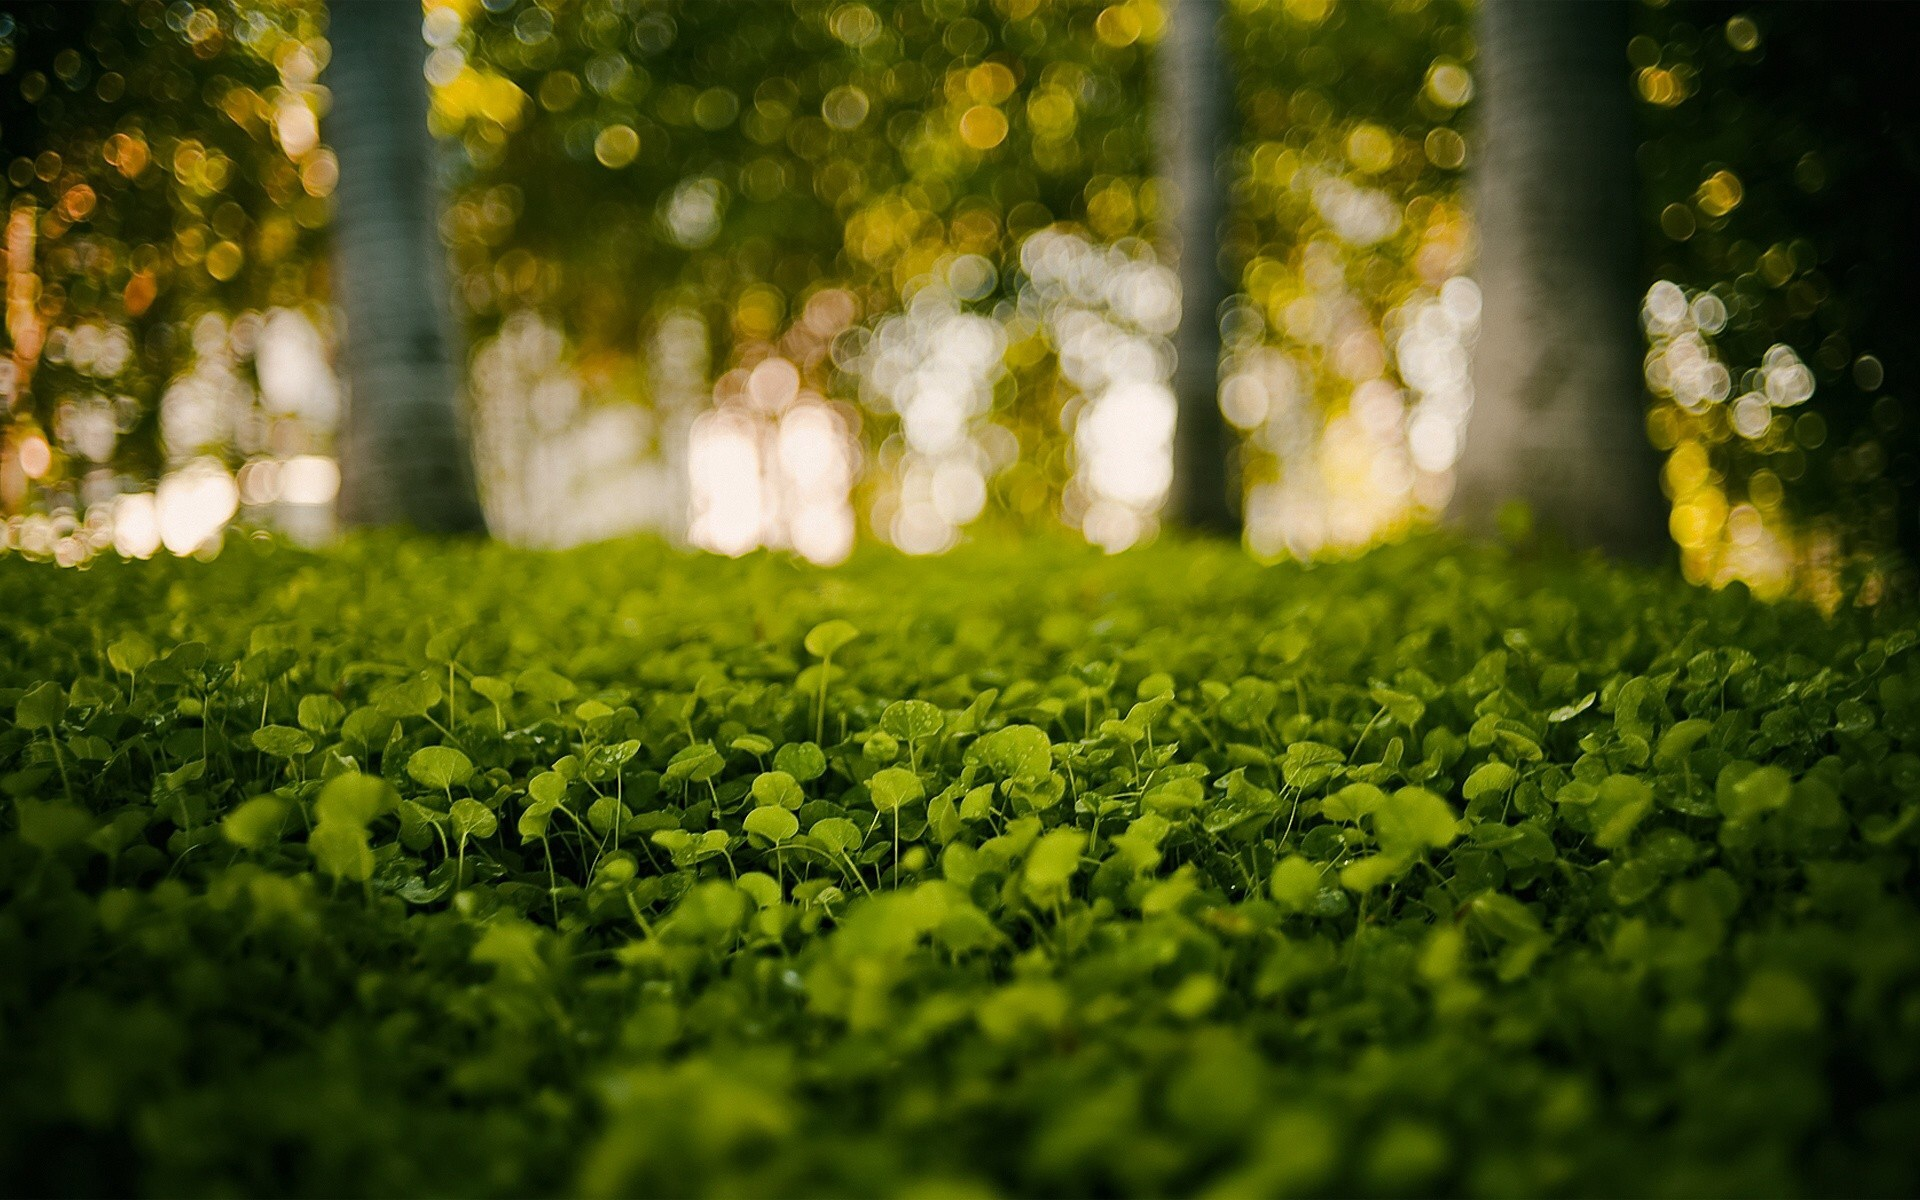 Forest Herbs wallpapers | Forest Herbs stock photos